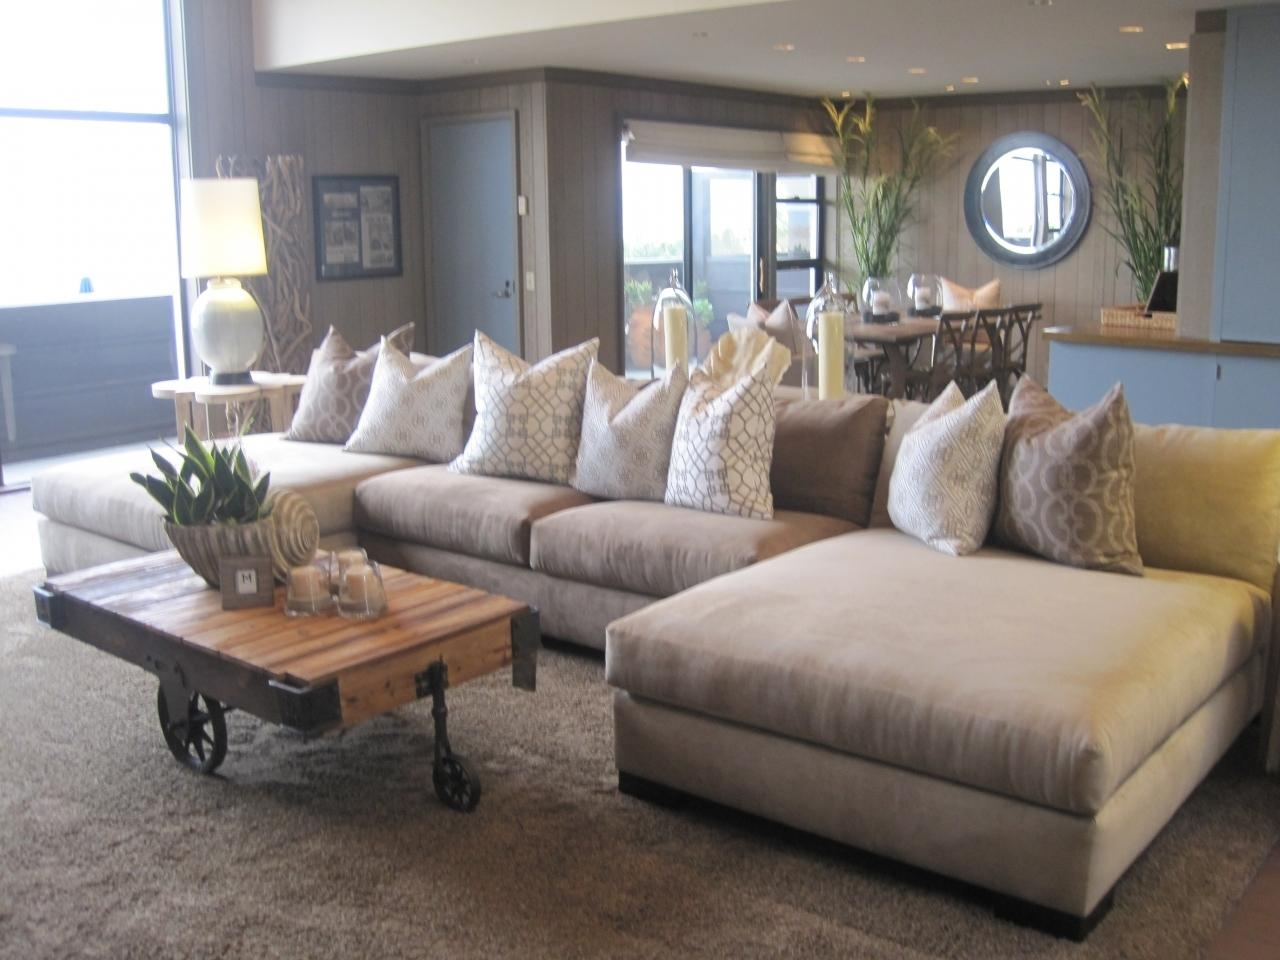 Sofas Center : Large Sectional Sofa Sofas With Recliners For Sale Within Extra Large Sectional Sofas (Image 11 of 15)